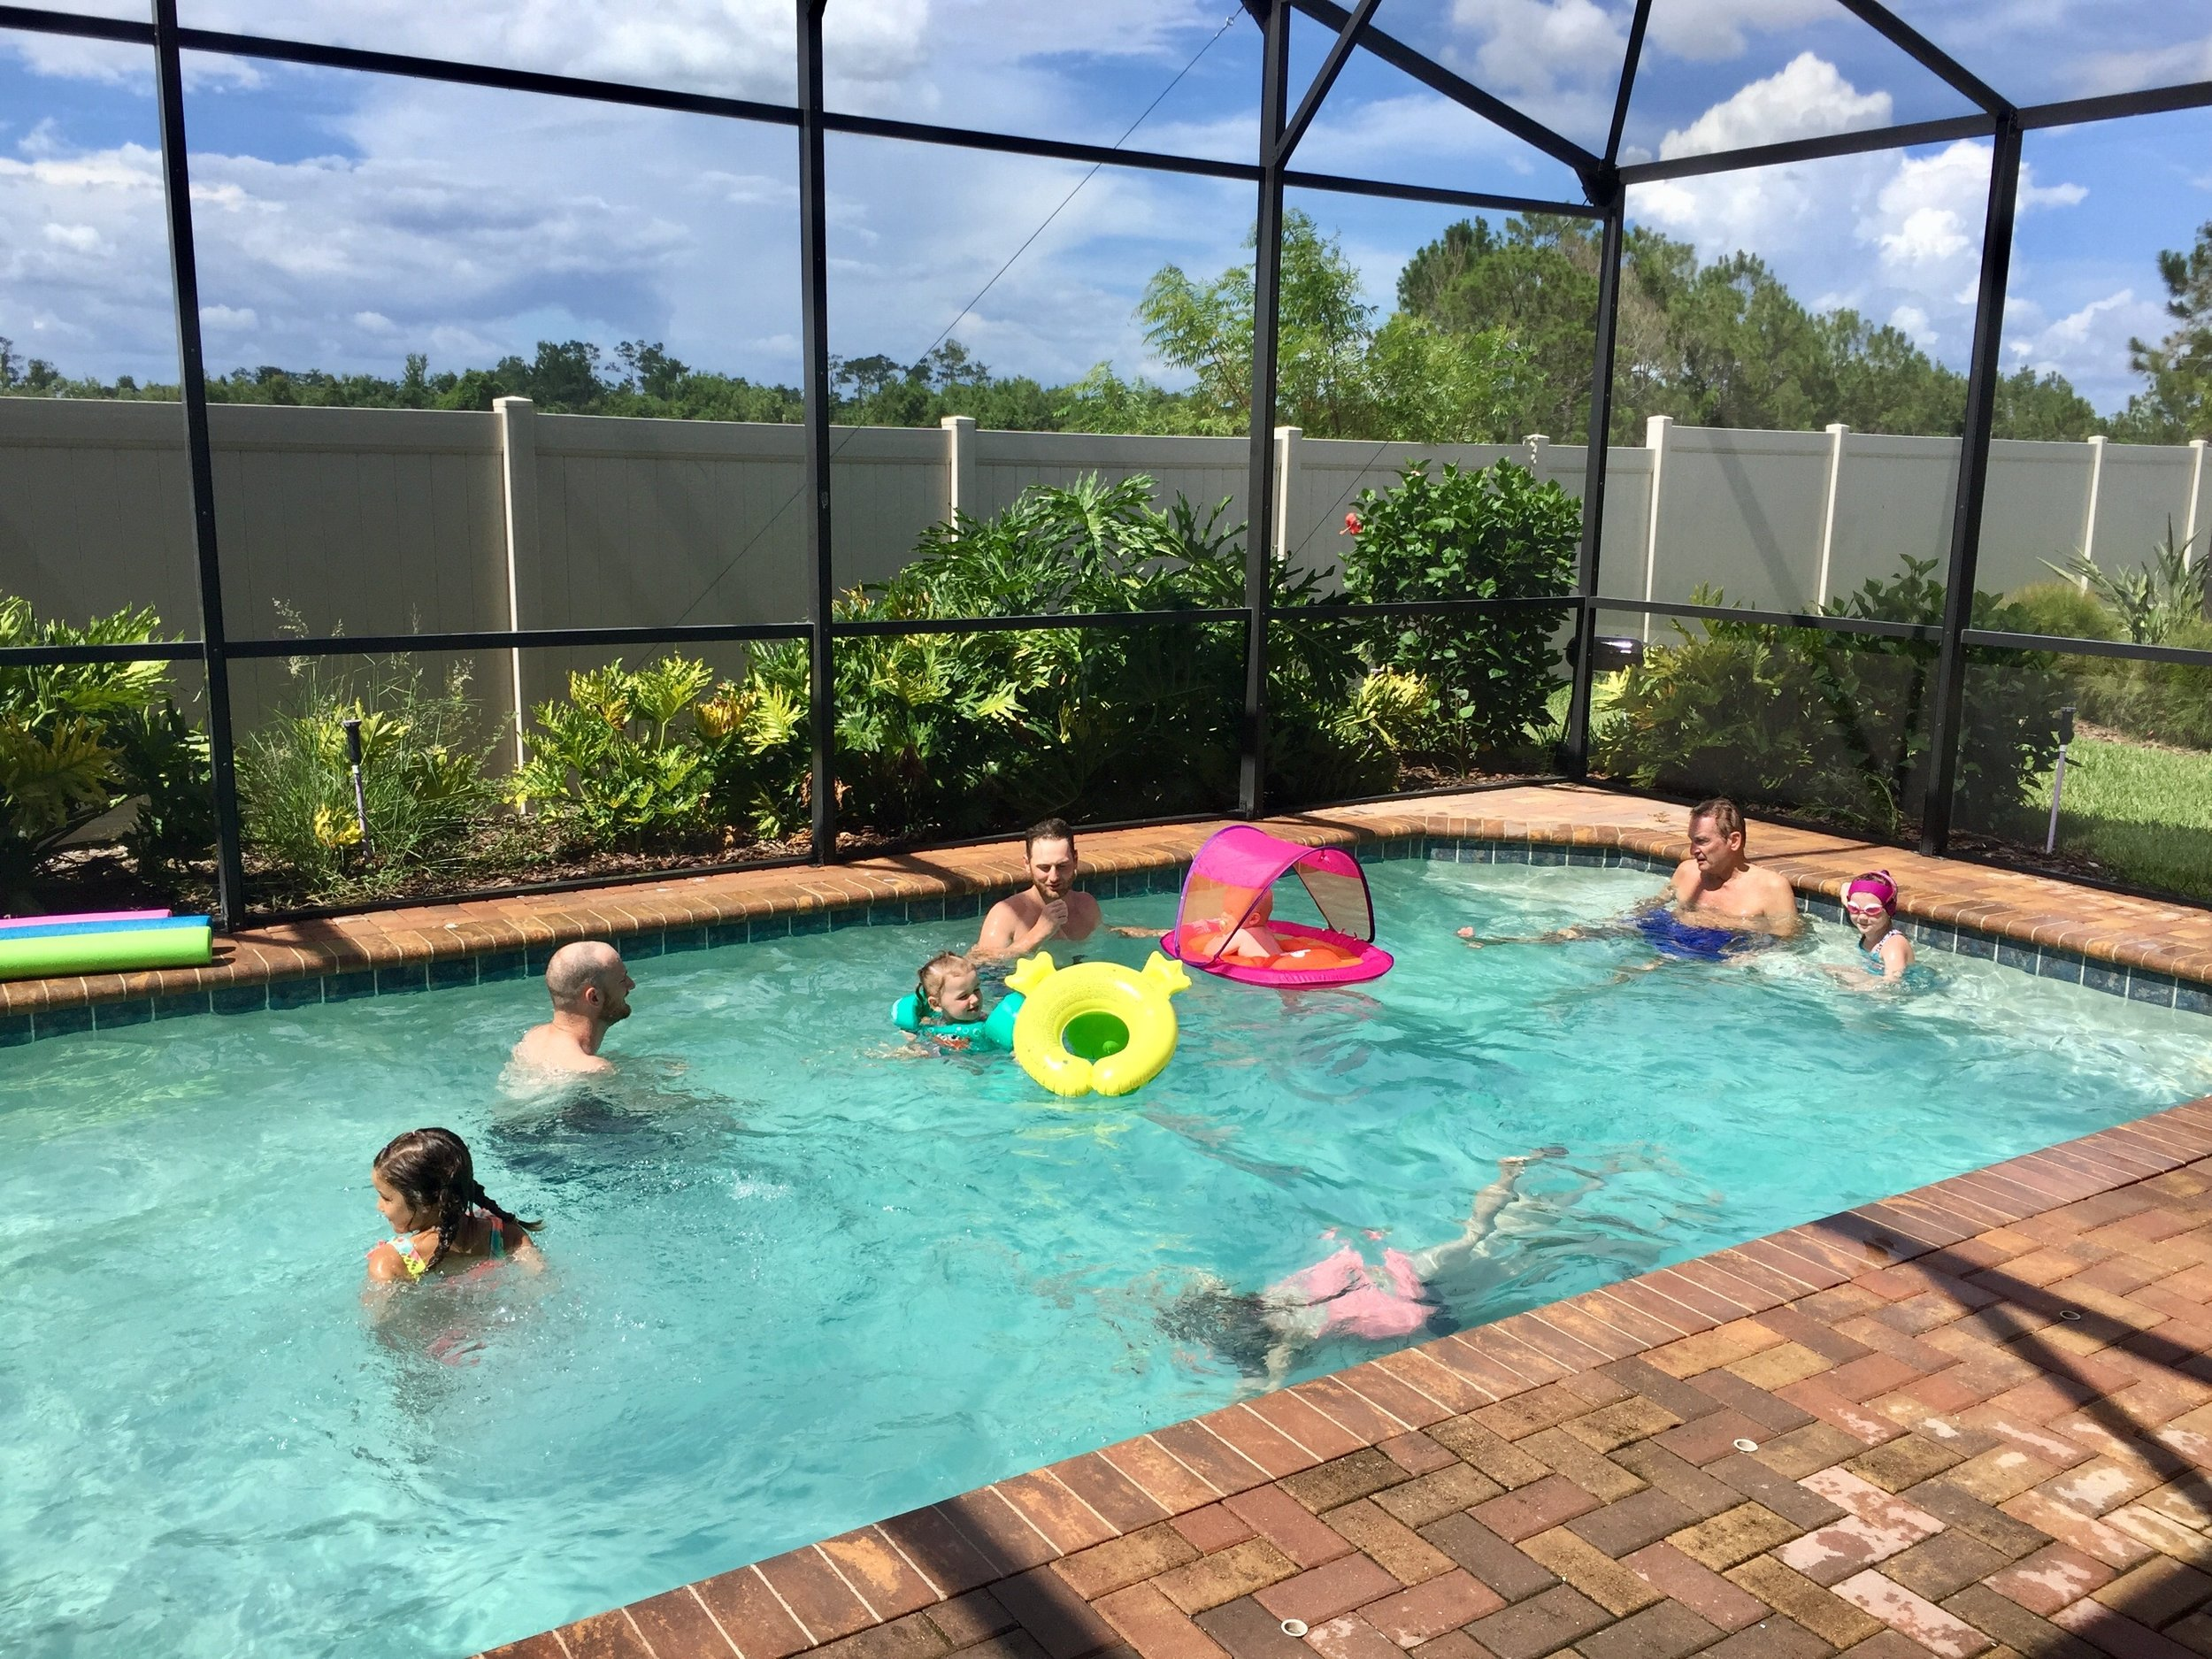 Disney airbnb pool group pic.jpg